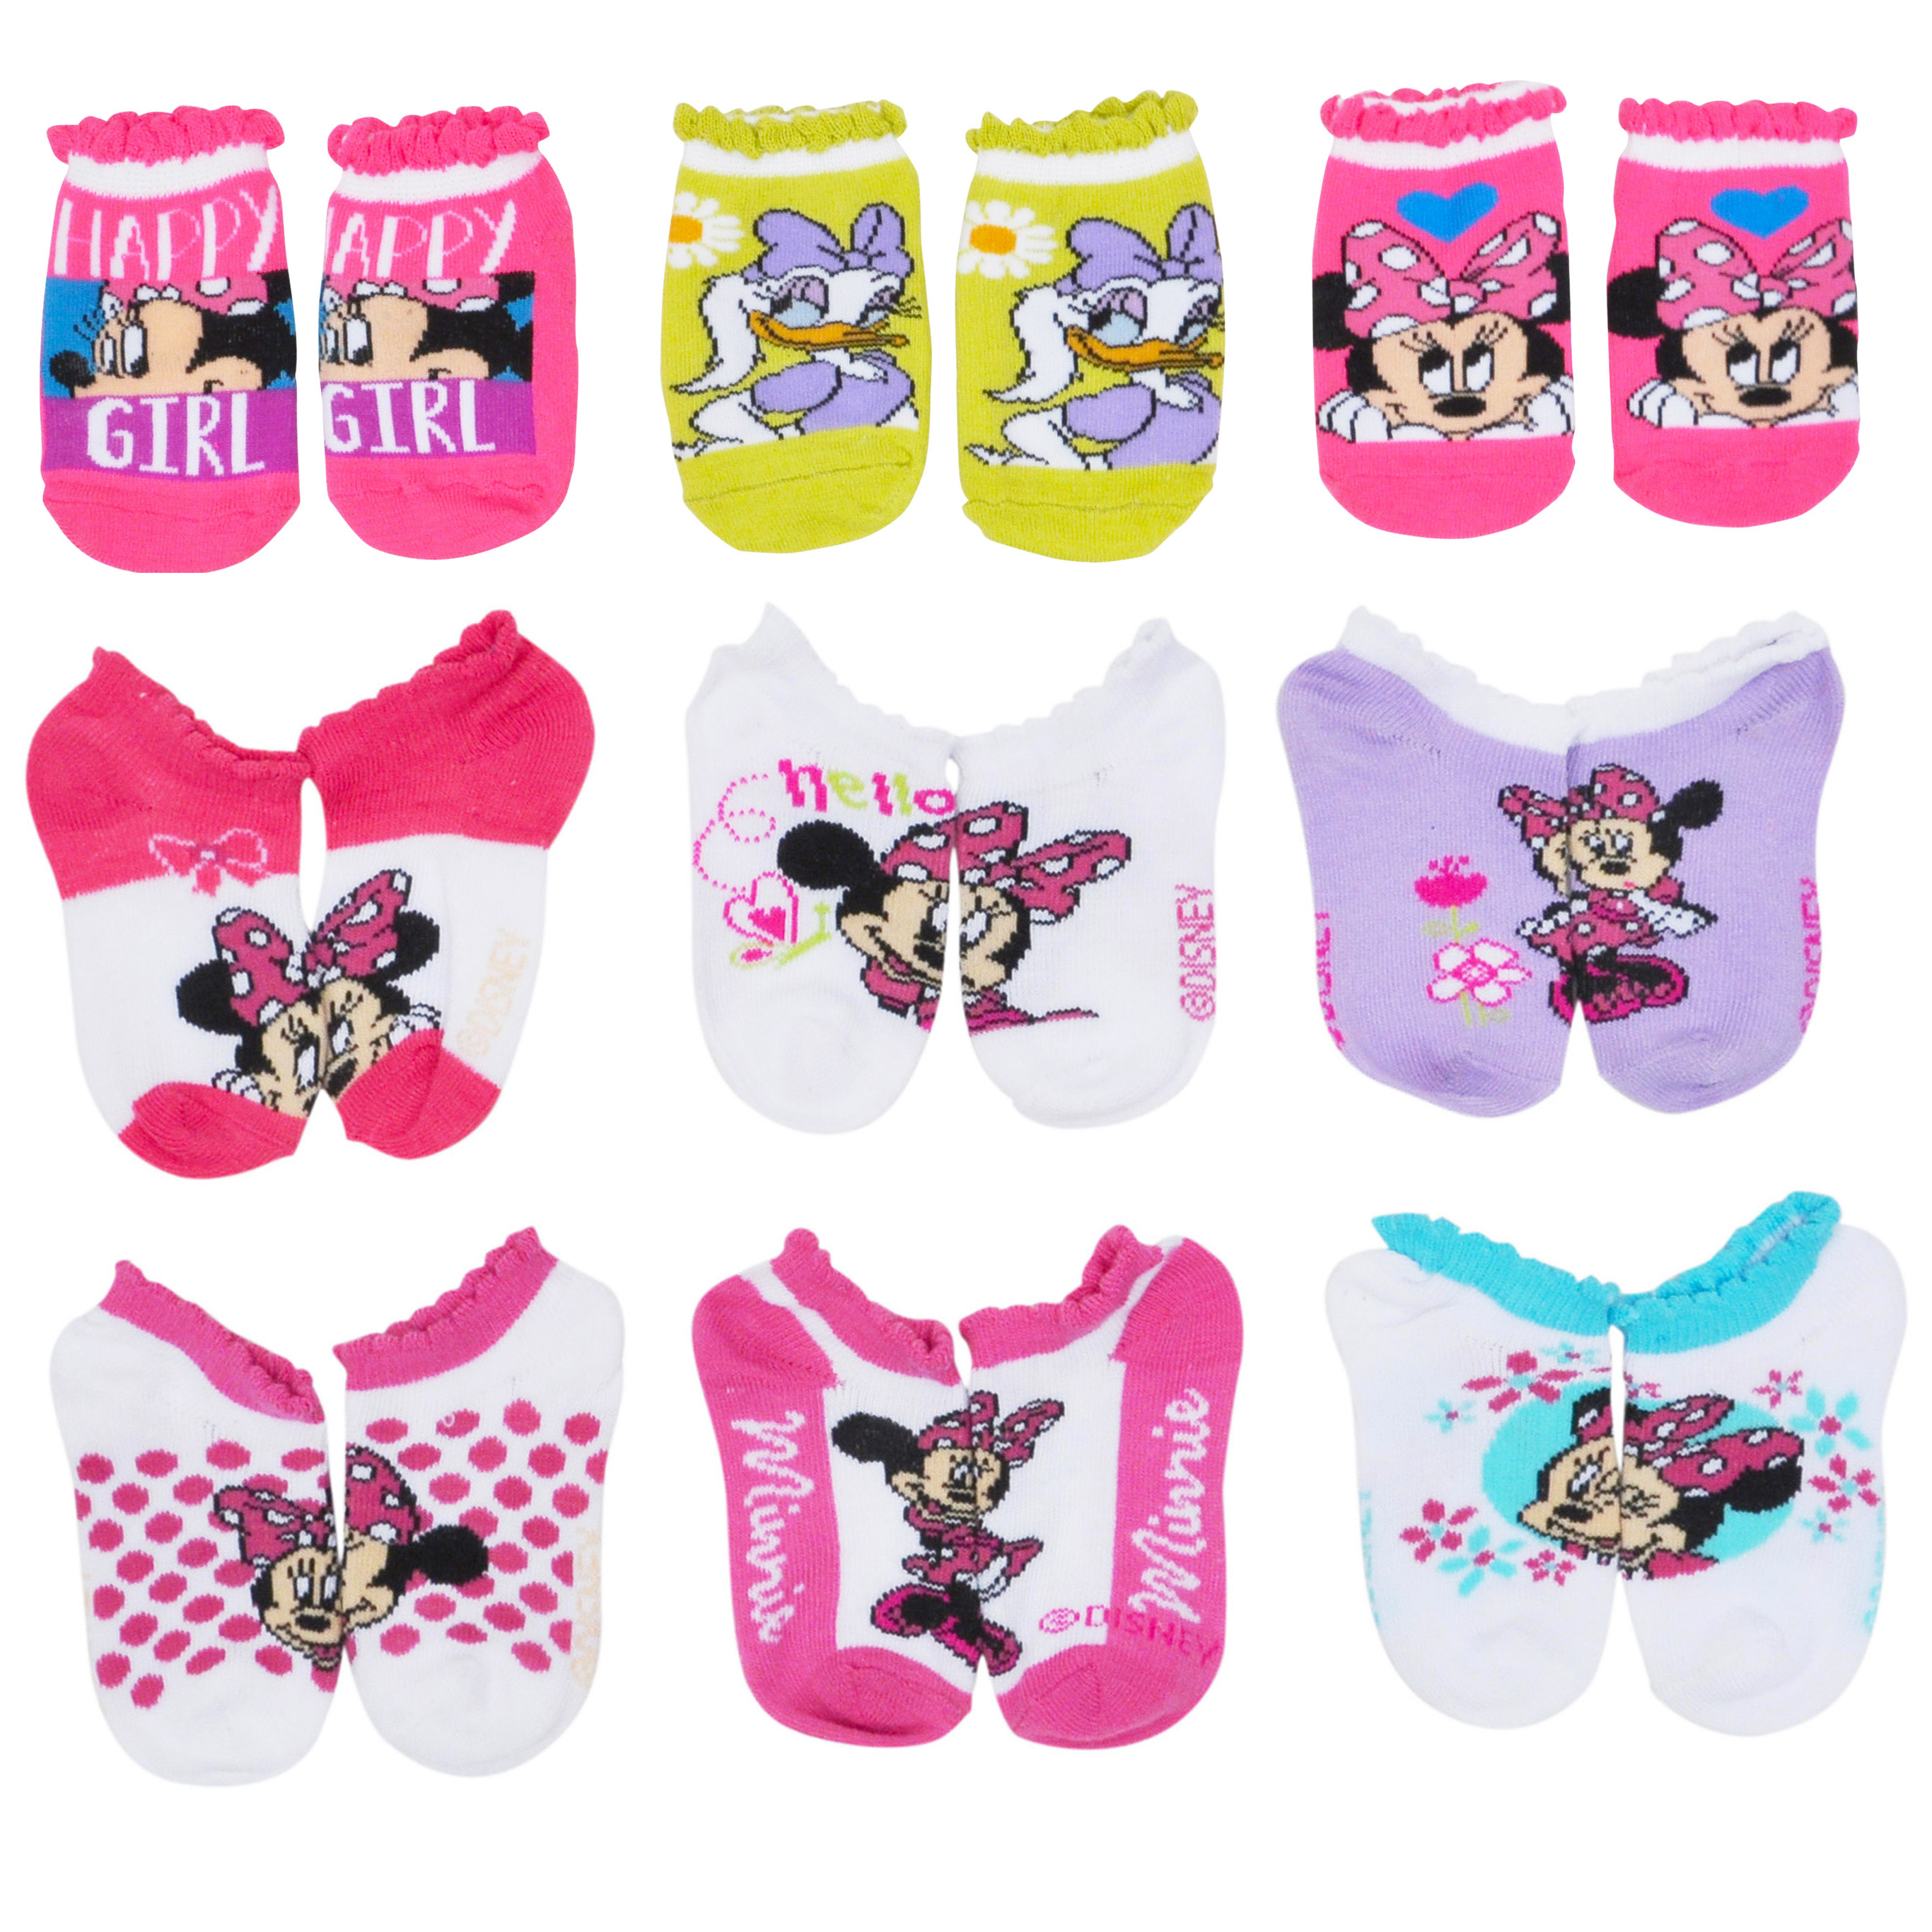 1e77f01ad80f2 Toddler Girls Minnie Mouse Daisy Duck Ankle Socks Size 2-4 9-Pairs